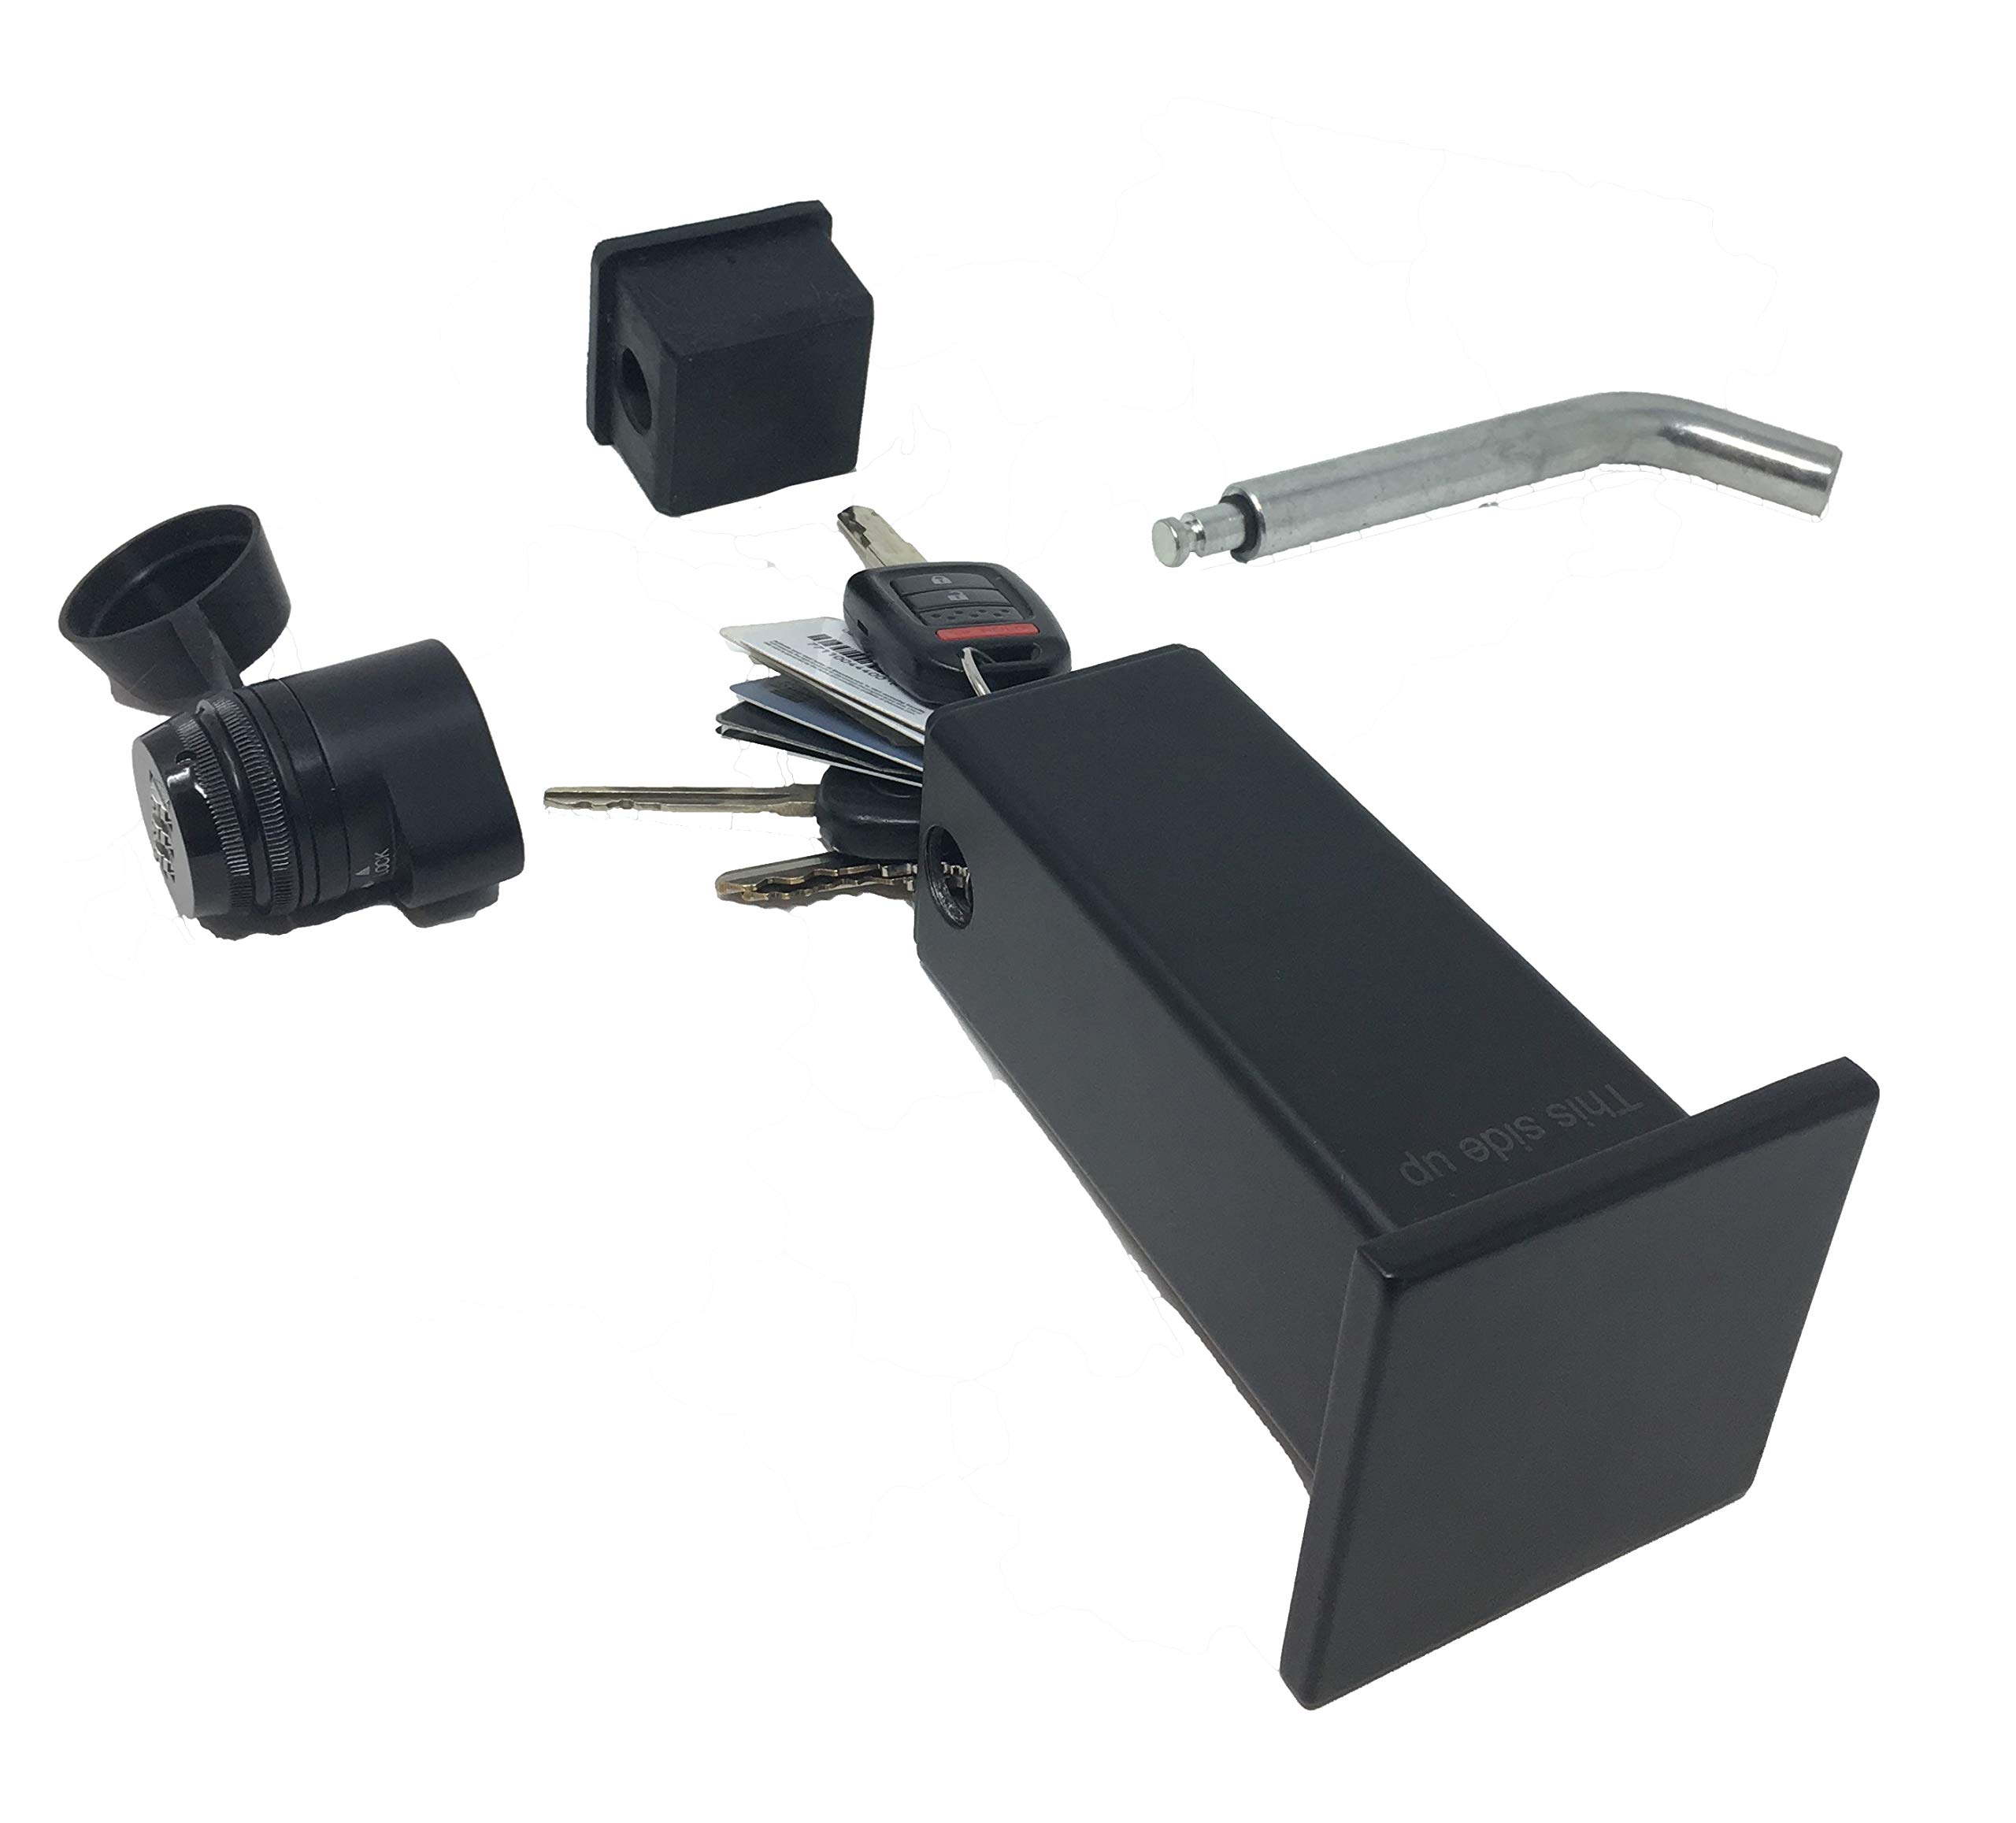 Beech Lane Locking Hitch Storage Box, Included Combo Lock Hitch Pin, Sturdy and Secure, Large Storage Space, Waterproof by Beech Lane